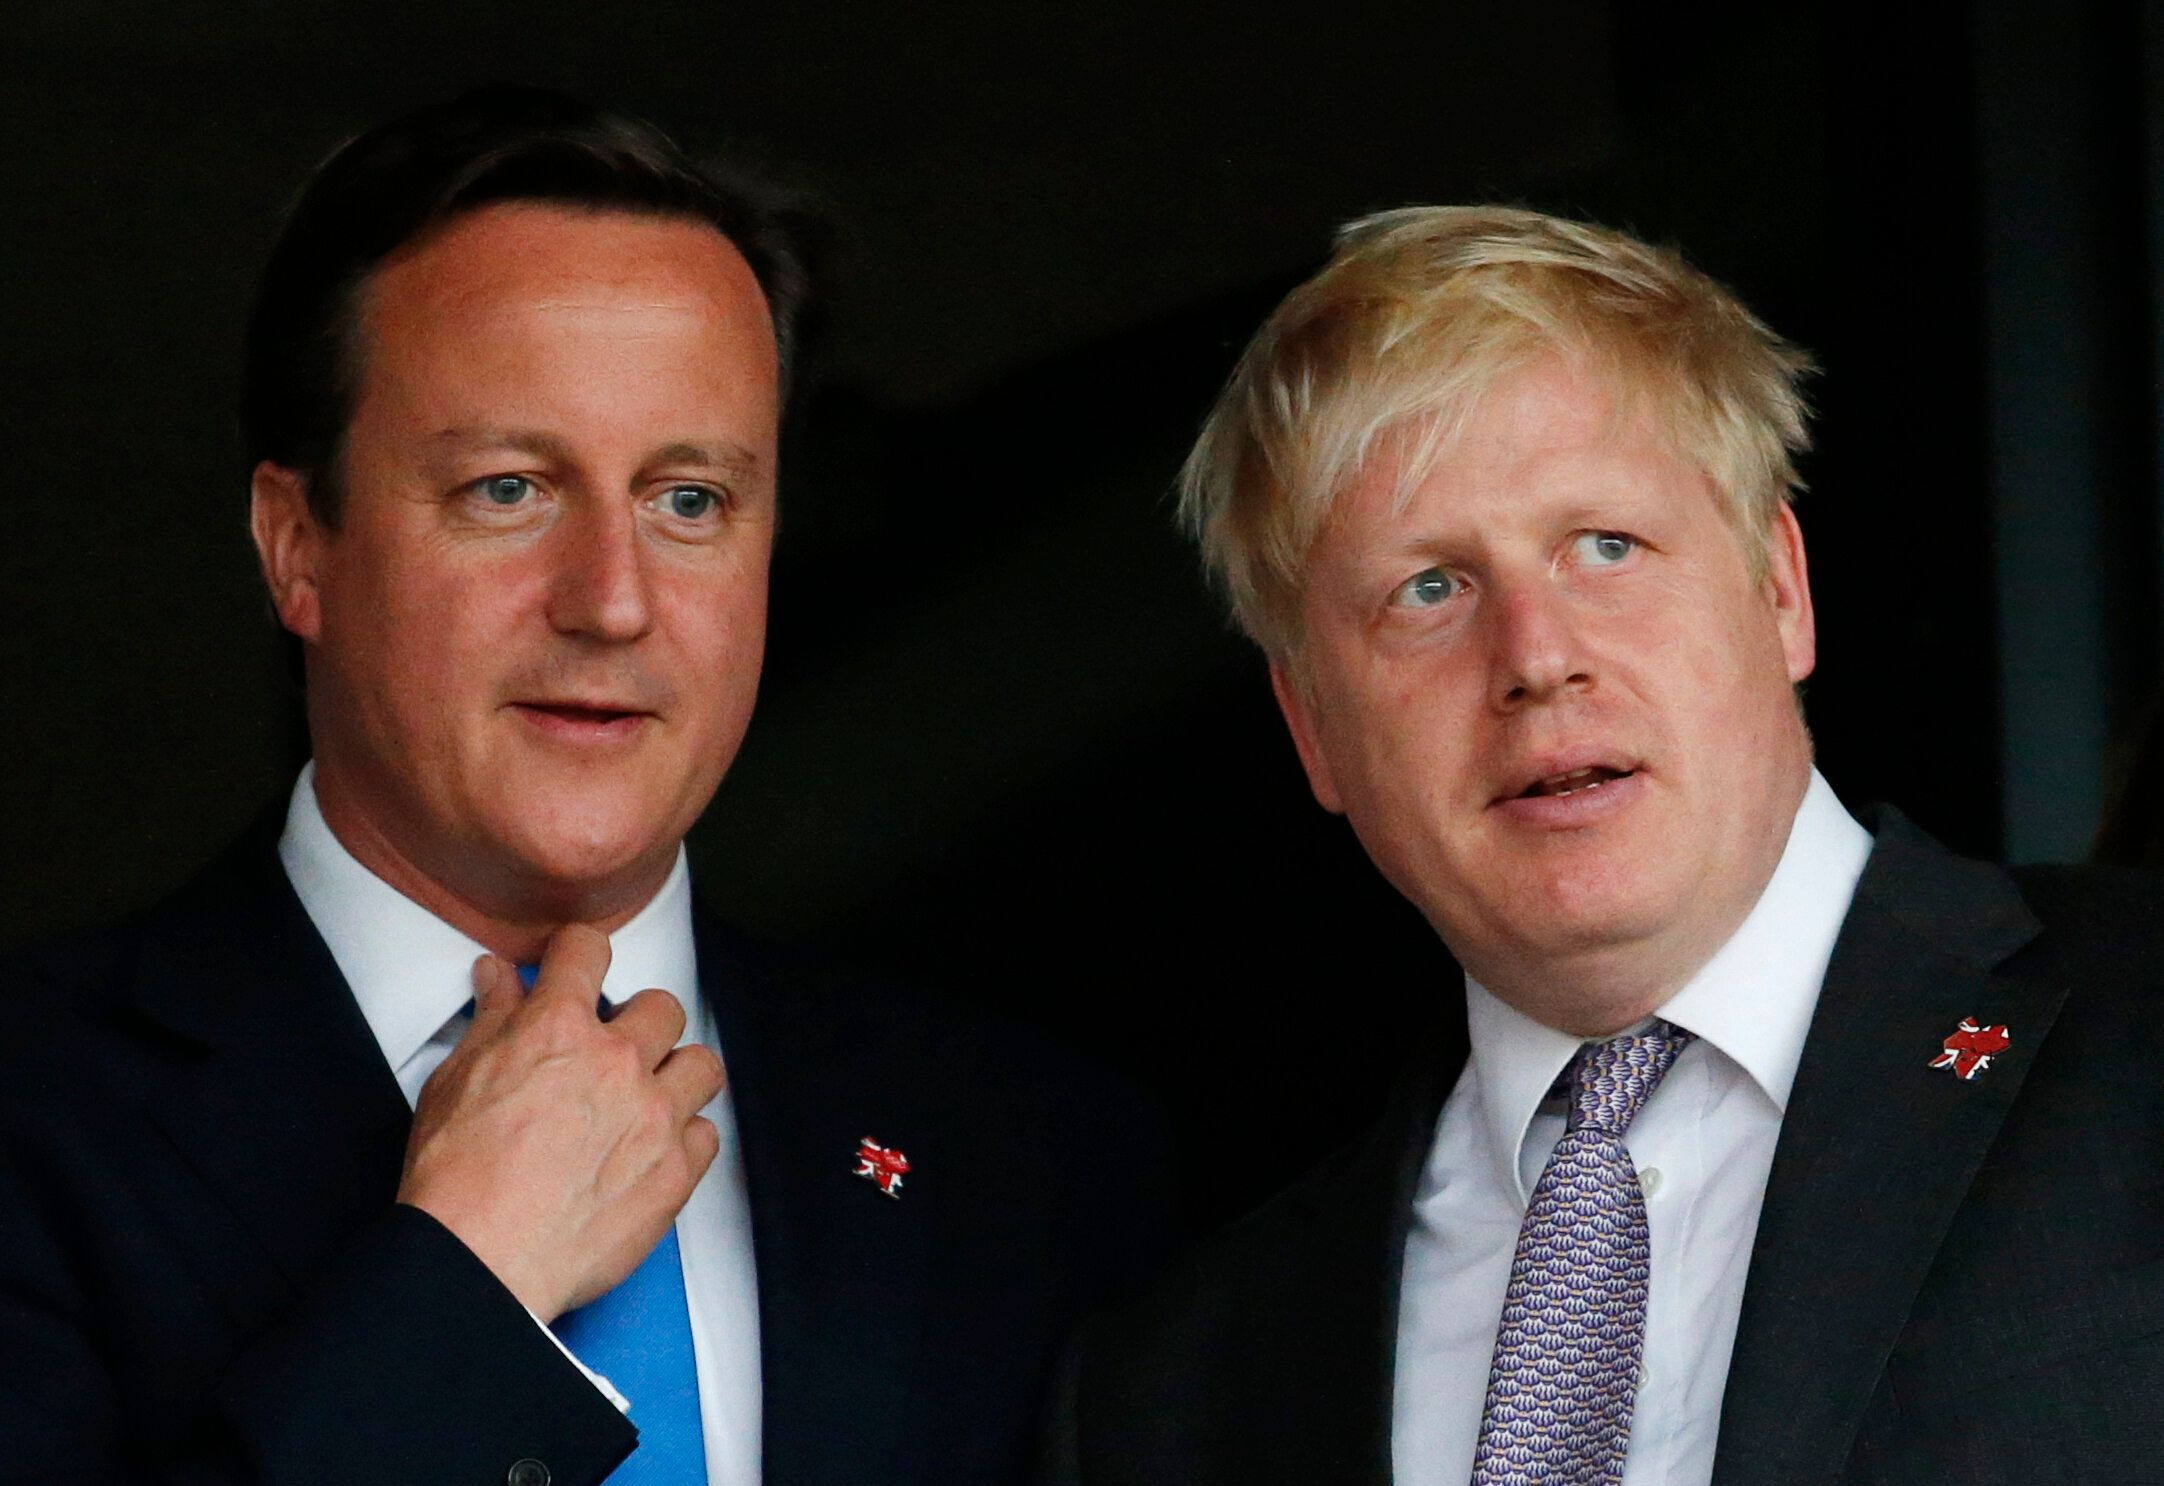 David Cameron Slams 'Liar' Boris Johnson For Backing Brexit To Boost Career